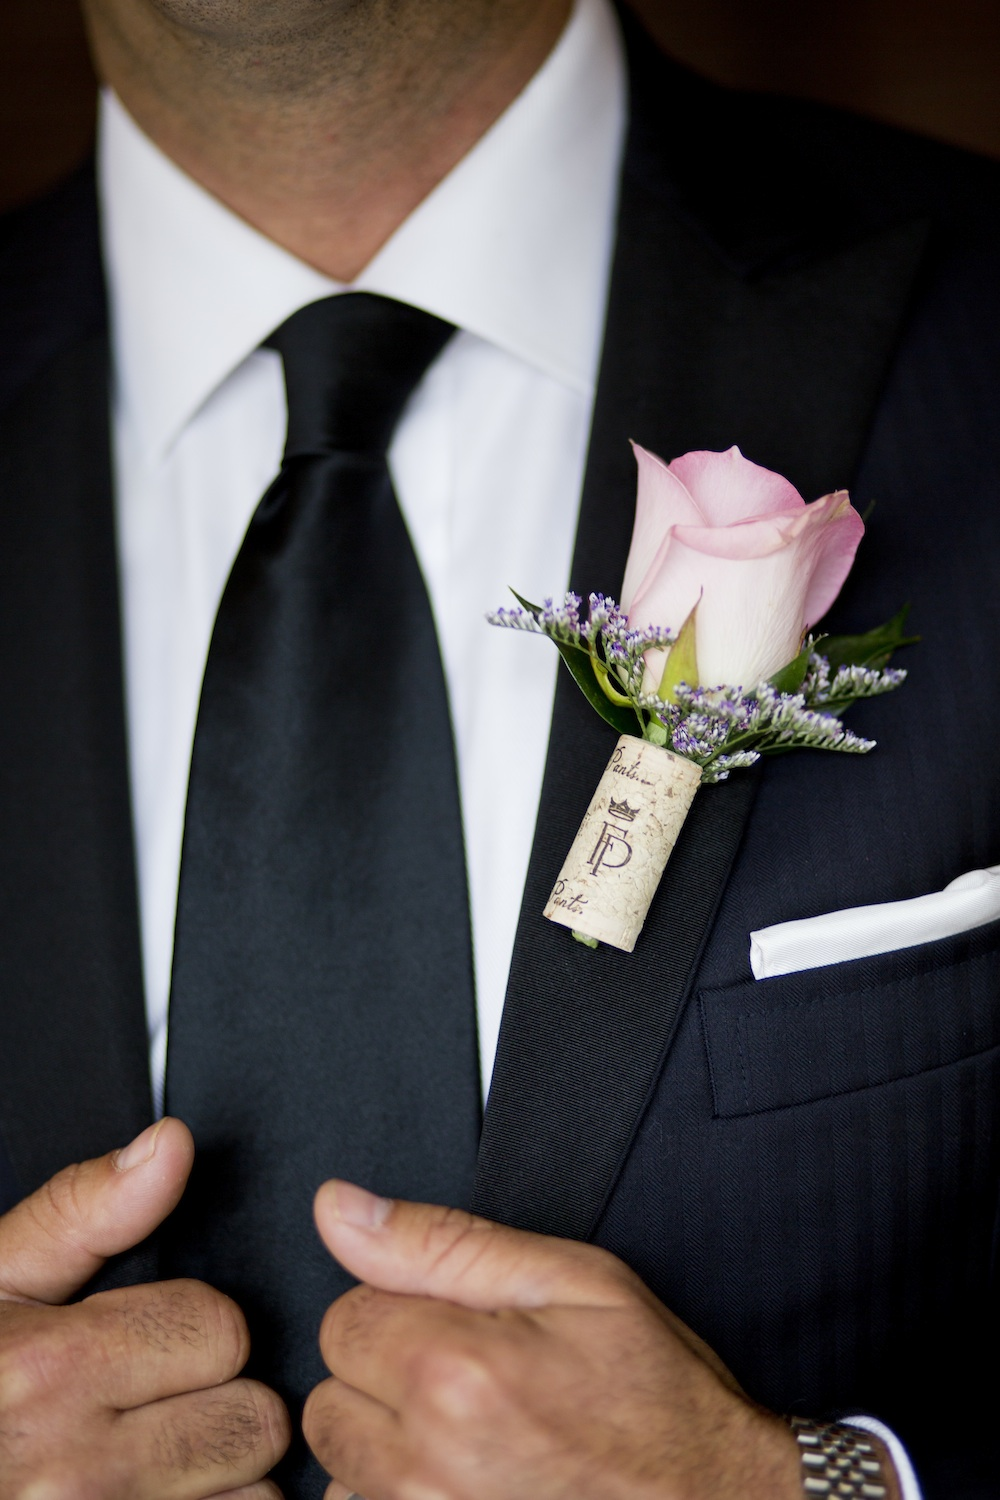 A Wine Cork Boutonniere is a Brilliant Idea for a Wine Themed Wedding / photo by Krista Patton Photography